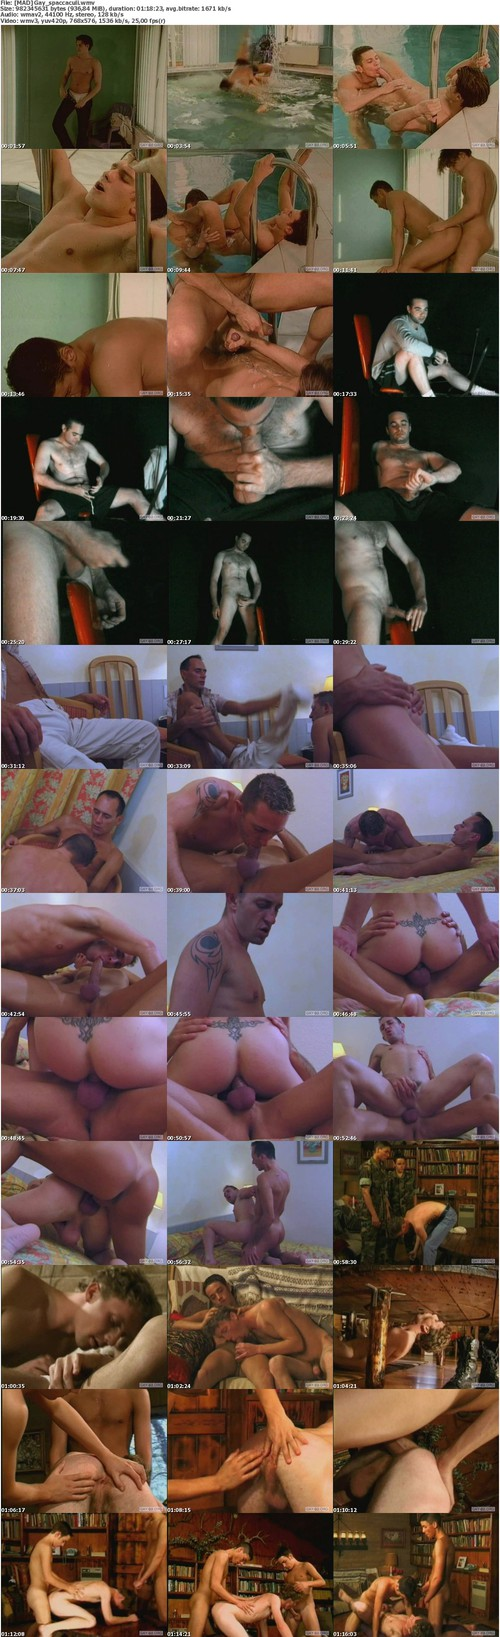 Gay Porn Downloads For Psp 58